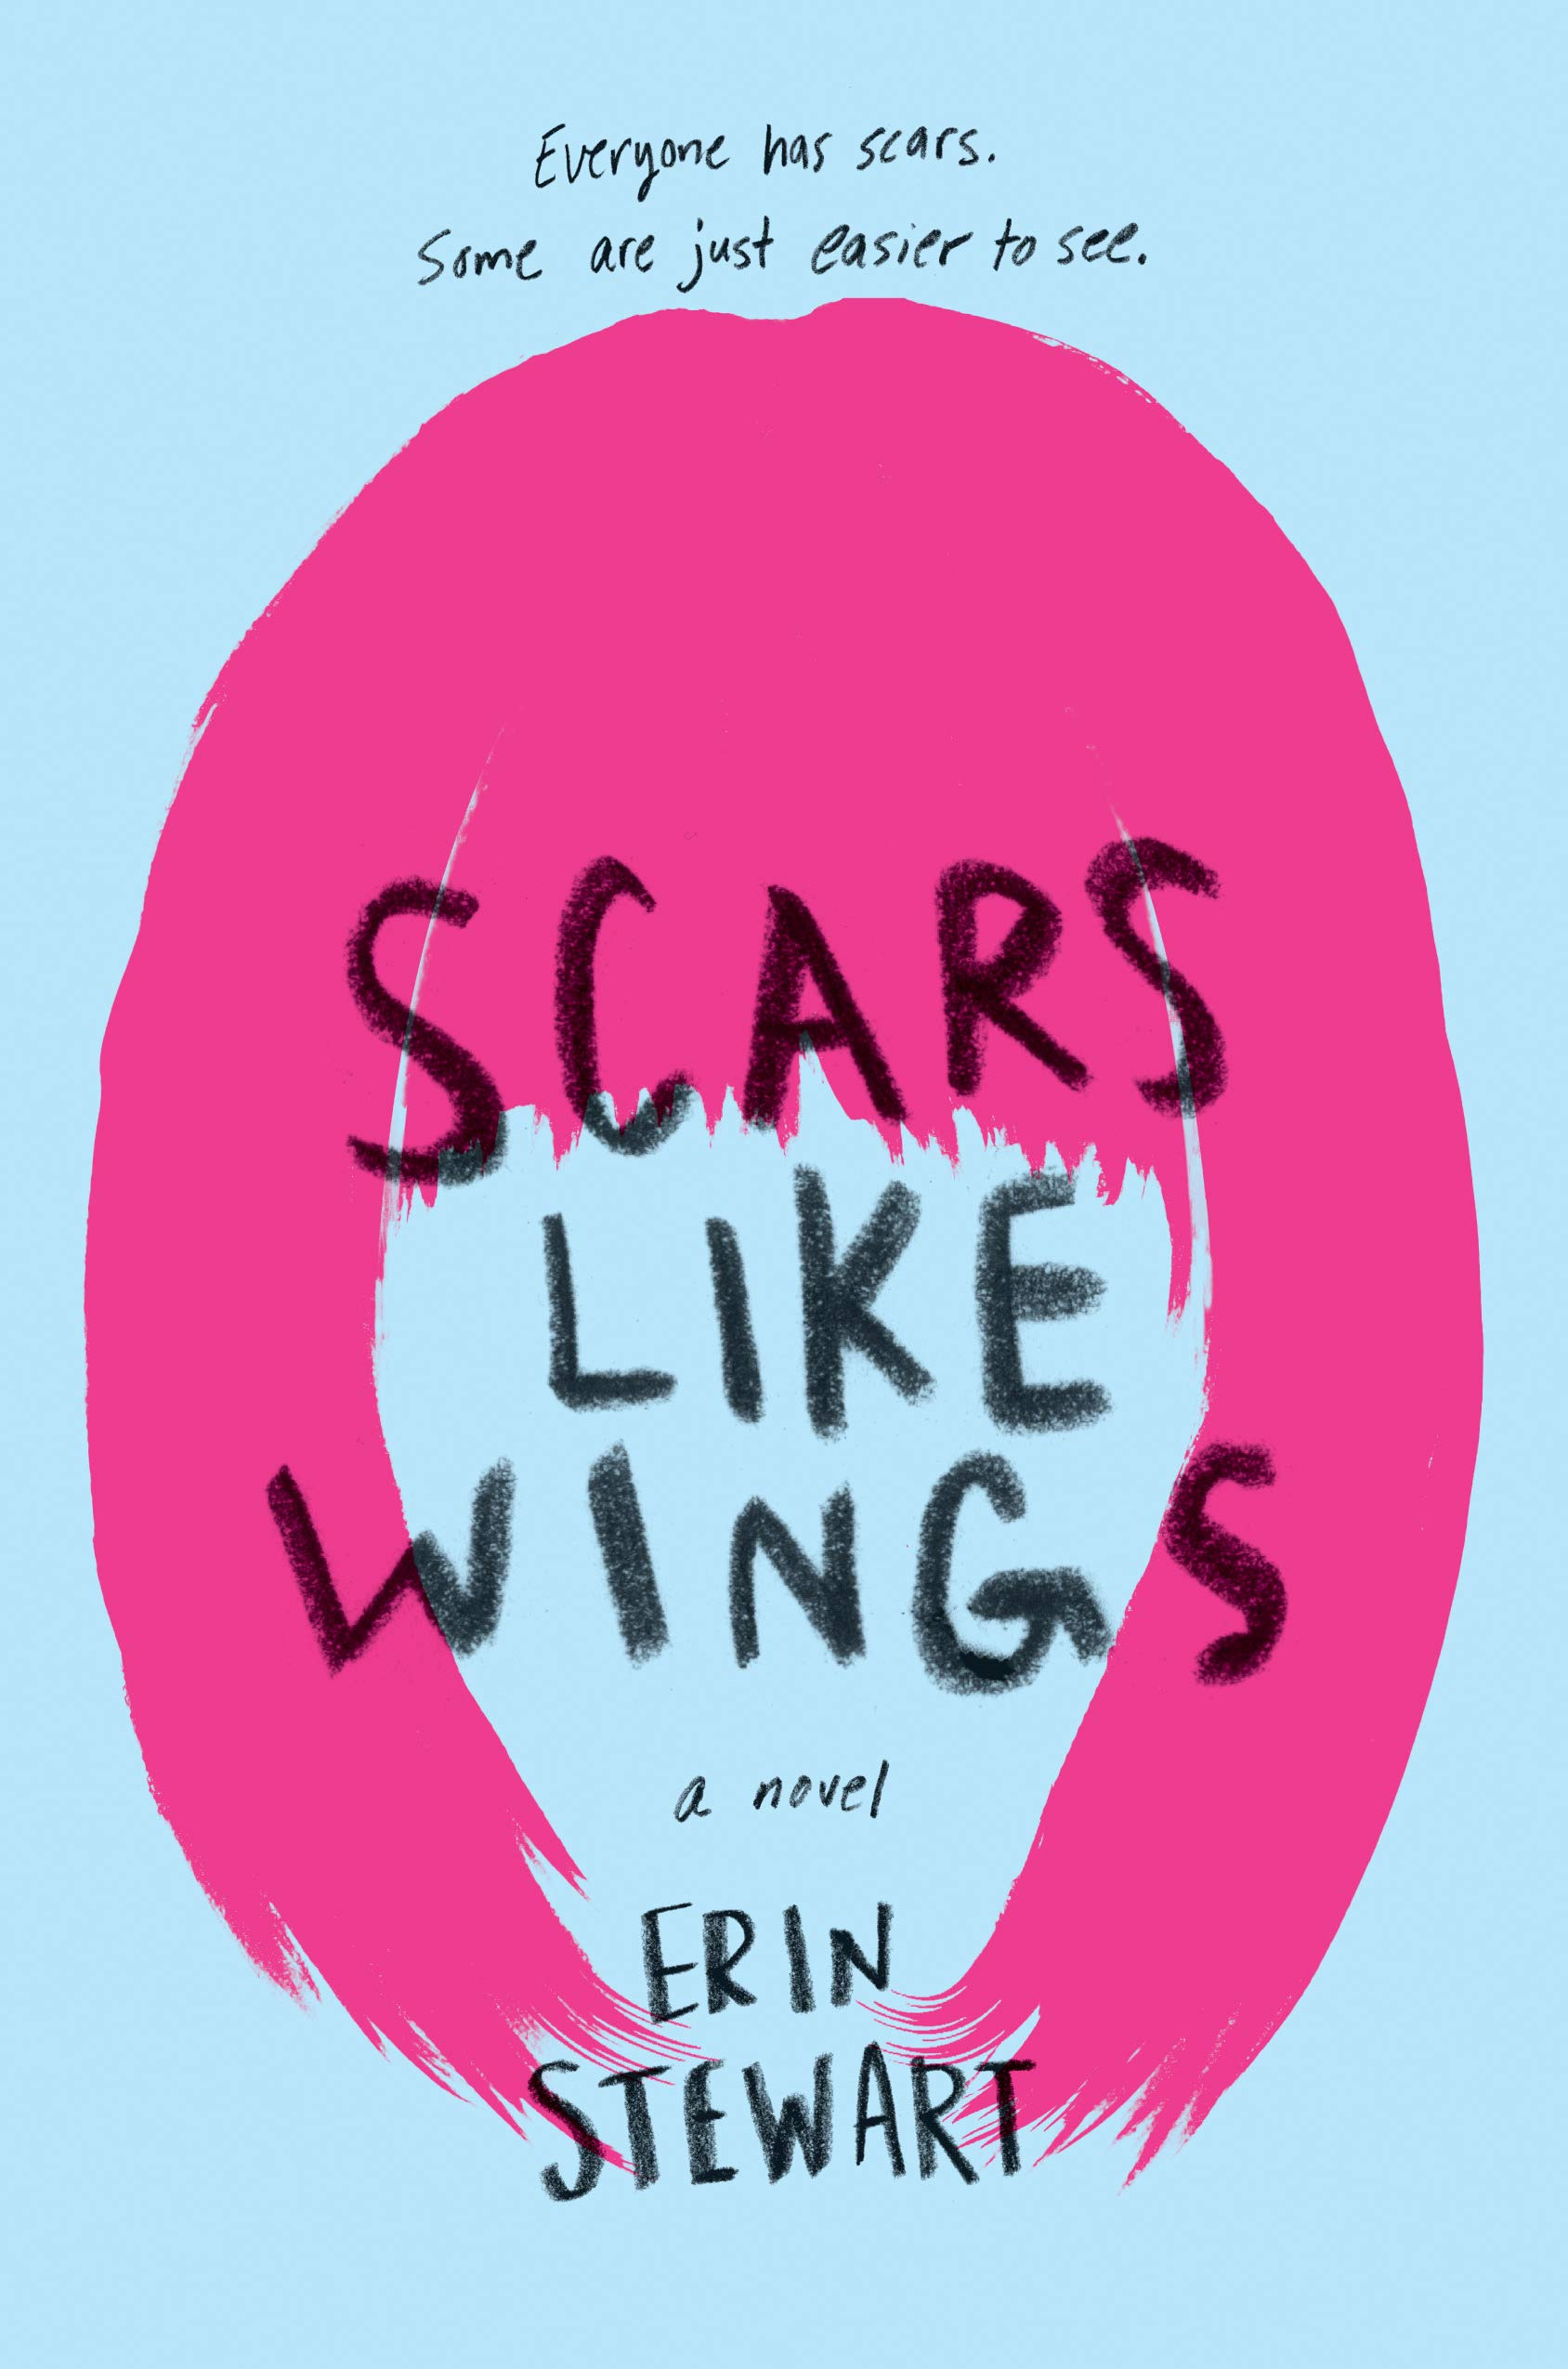 scars like winges